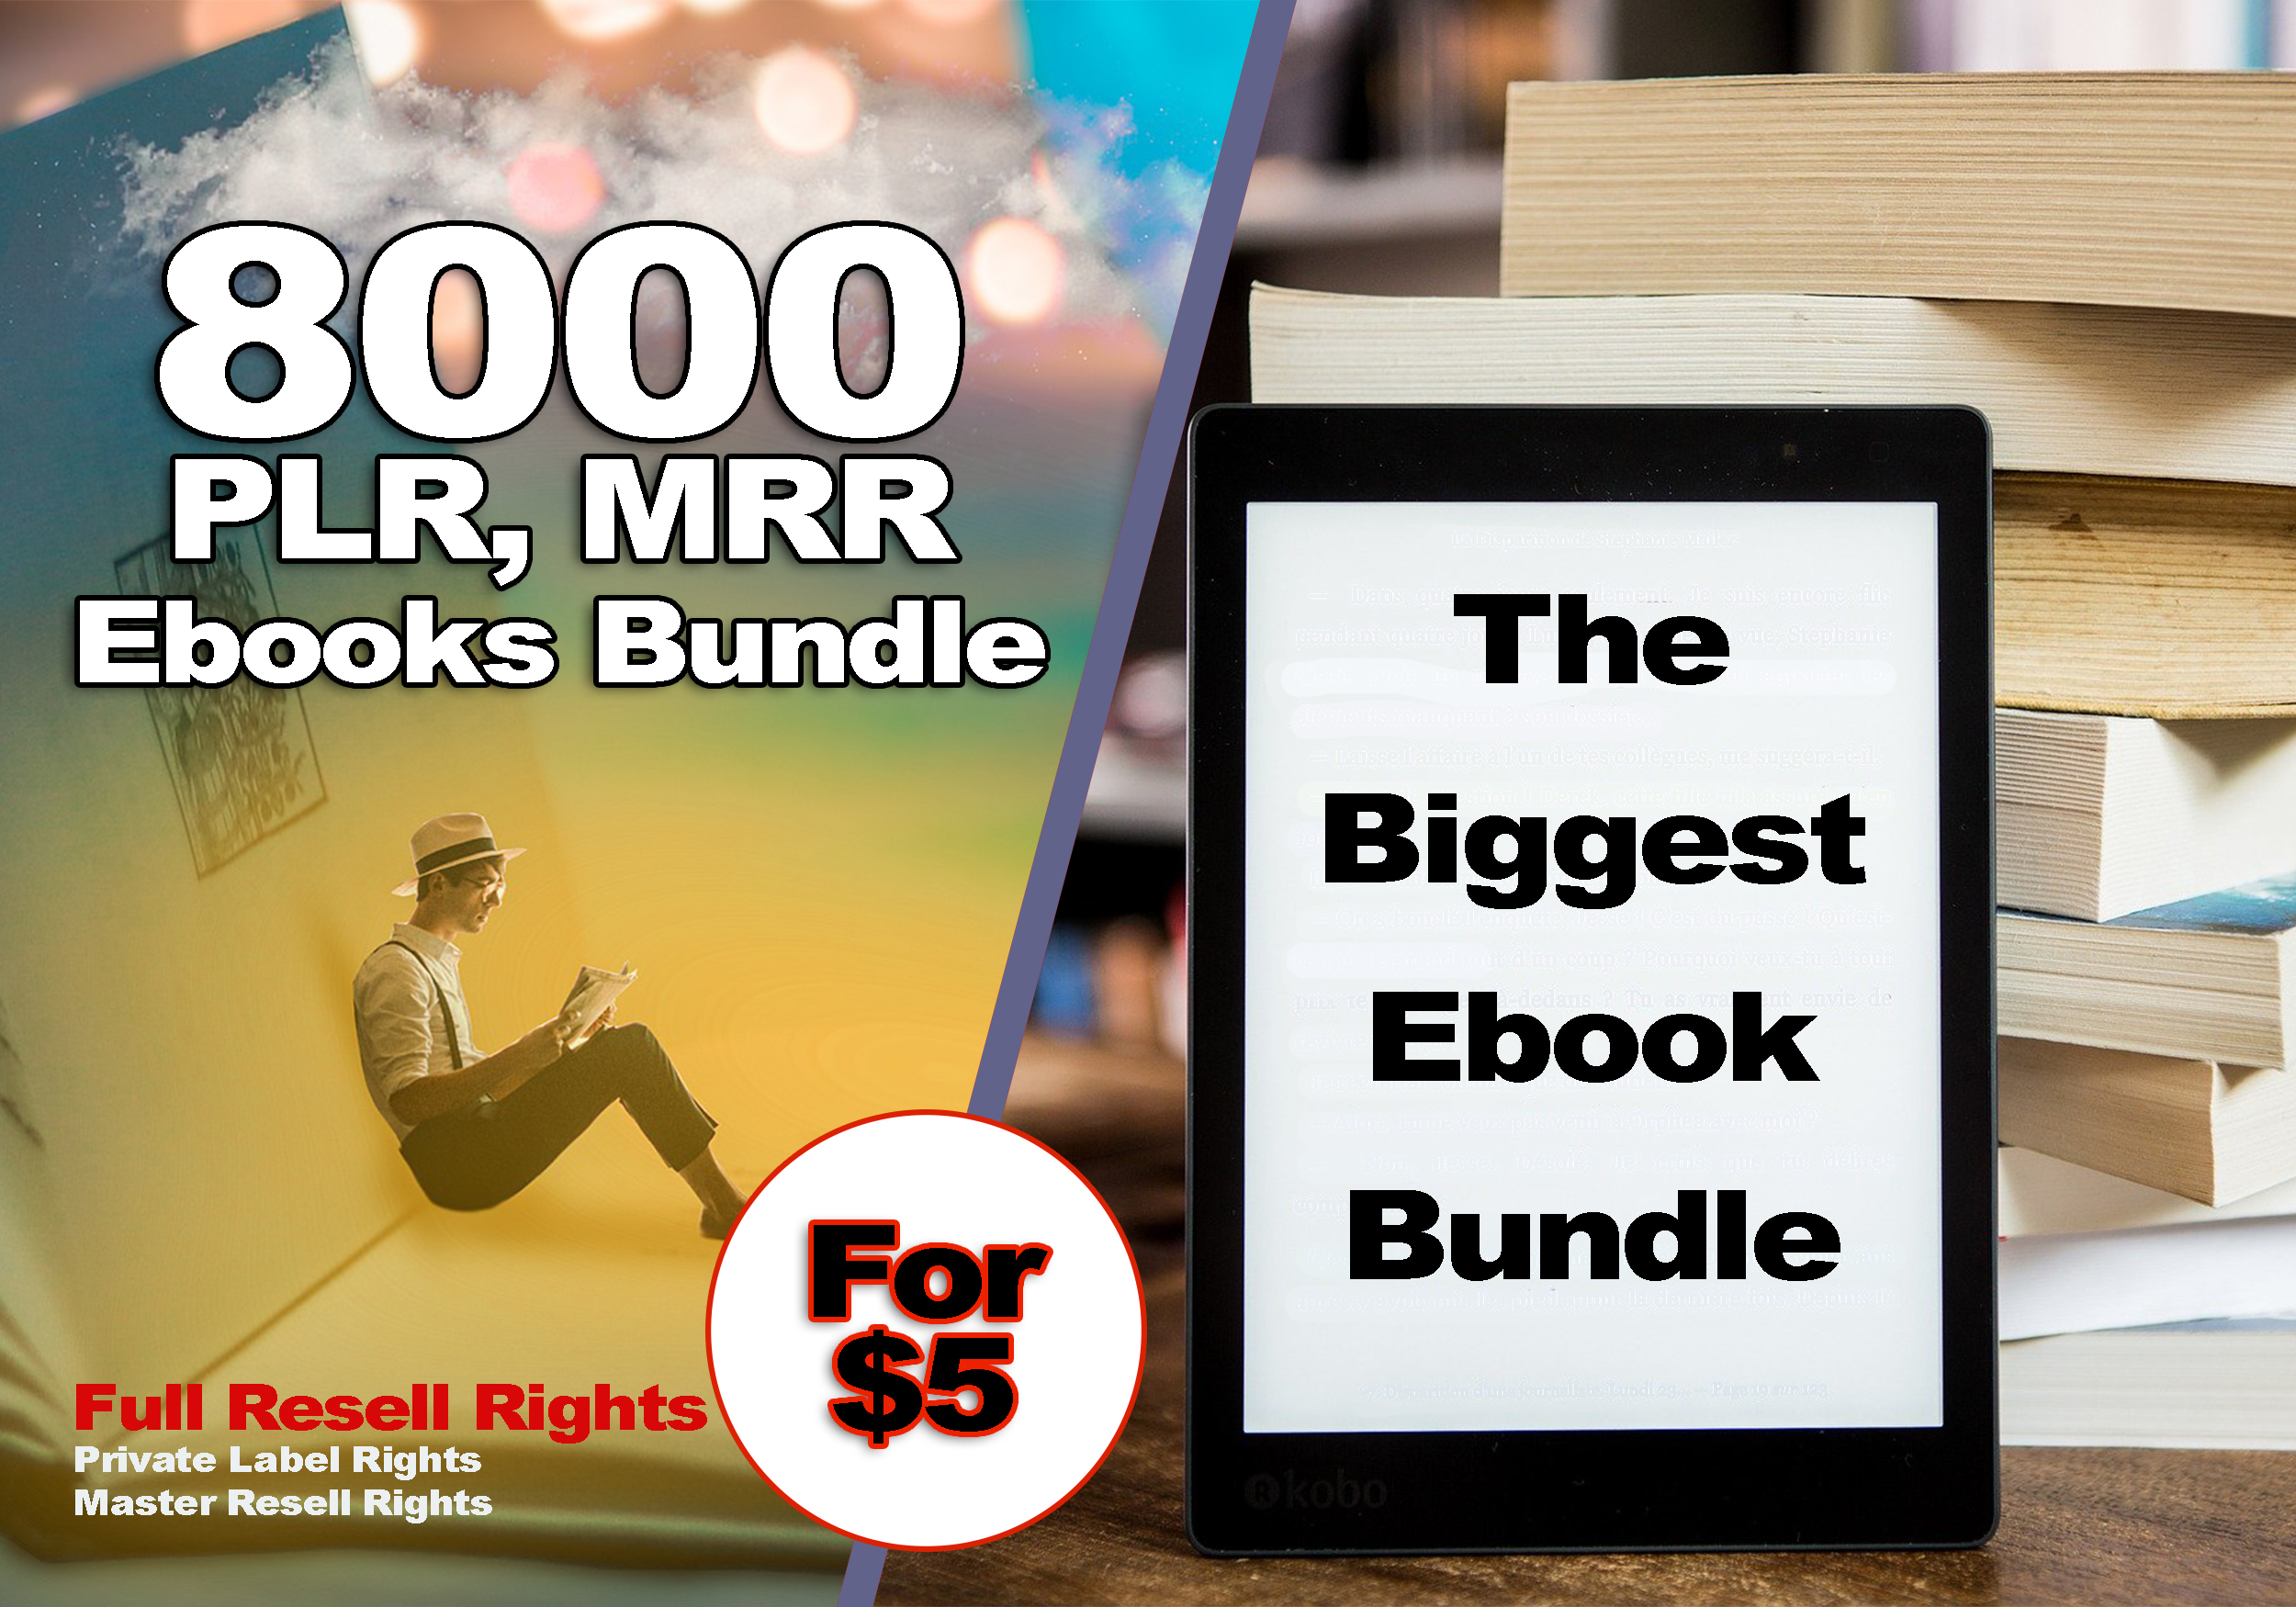 I will give 8000+ PLR eBook Bundle